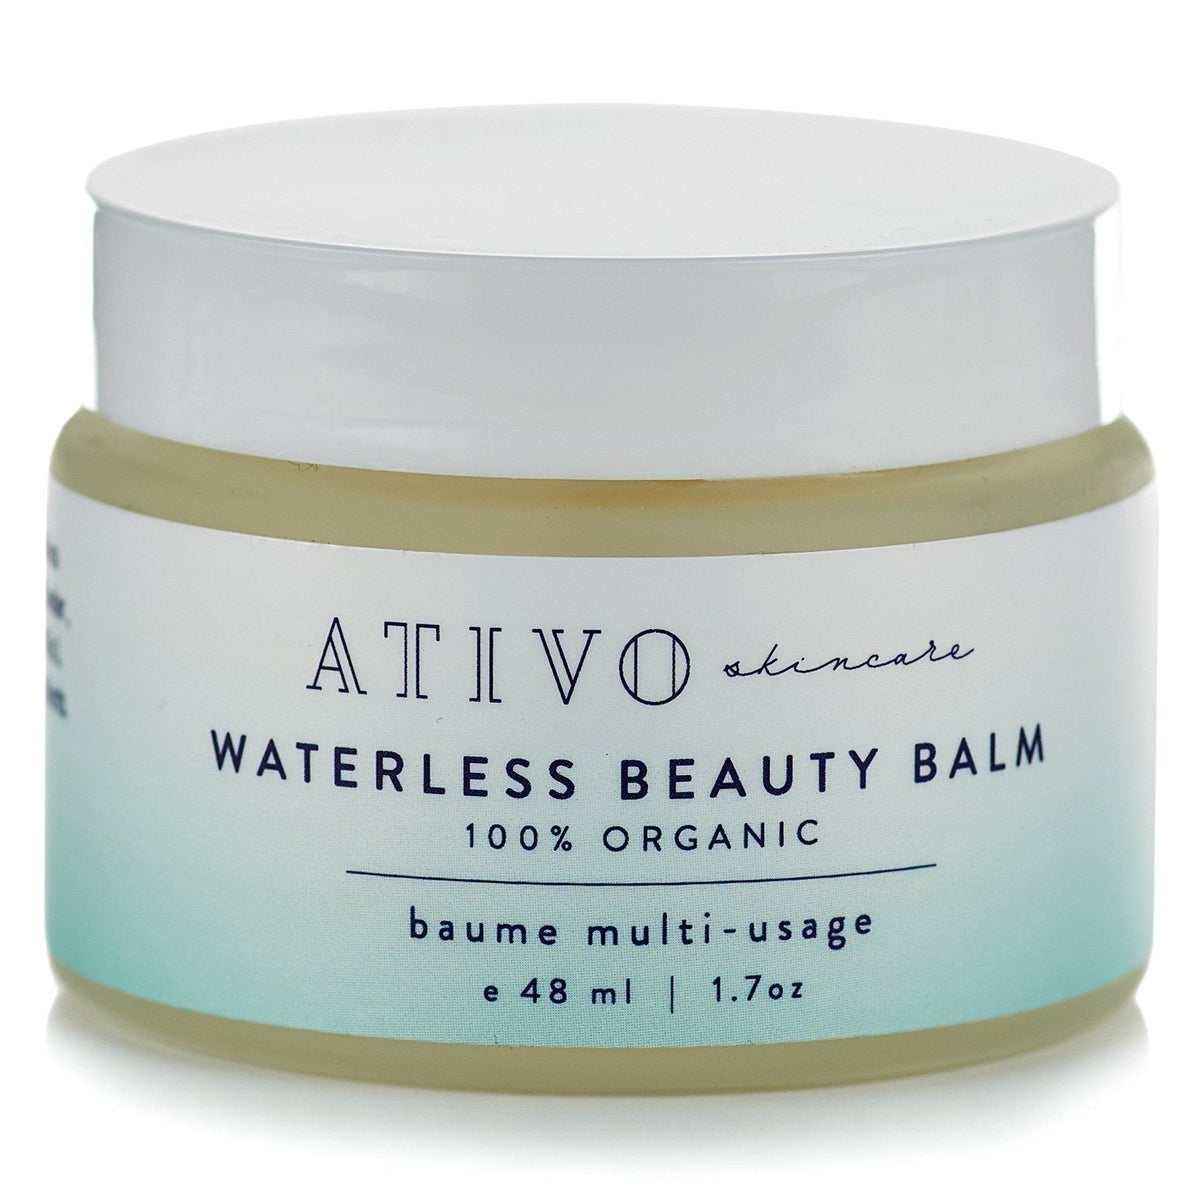 Waterless Beauty Balm.